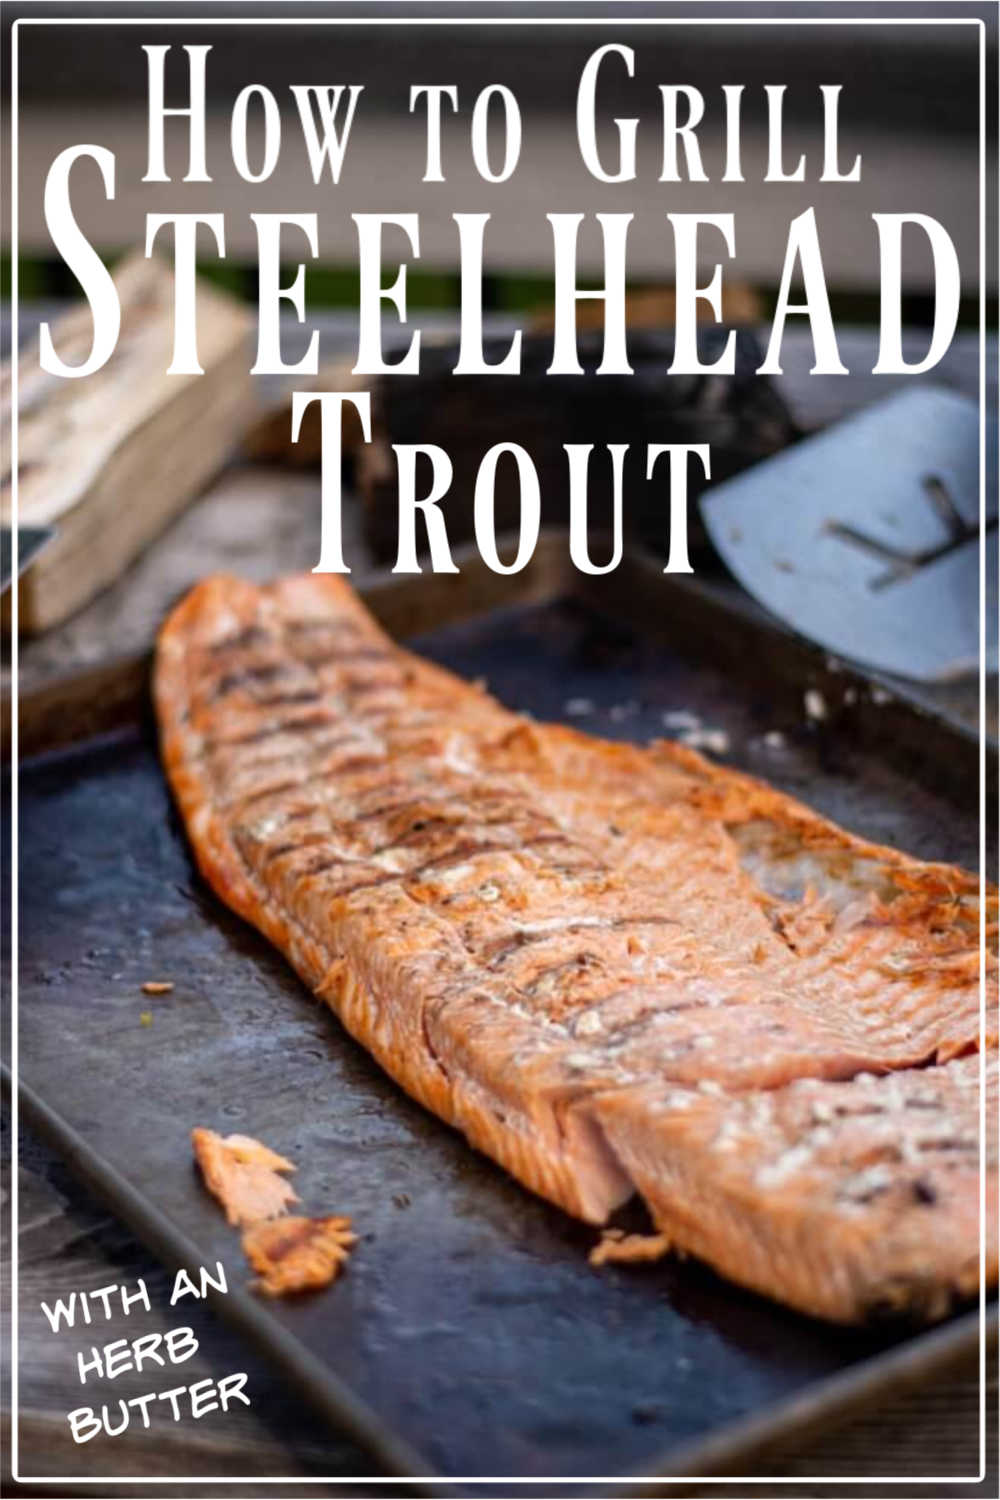 Grilled Steelhead Trout with Herb Butter